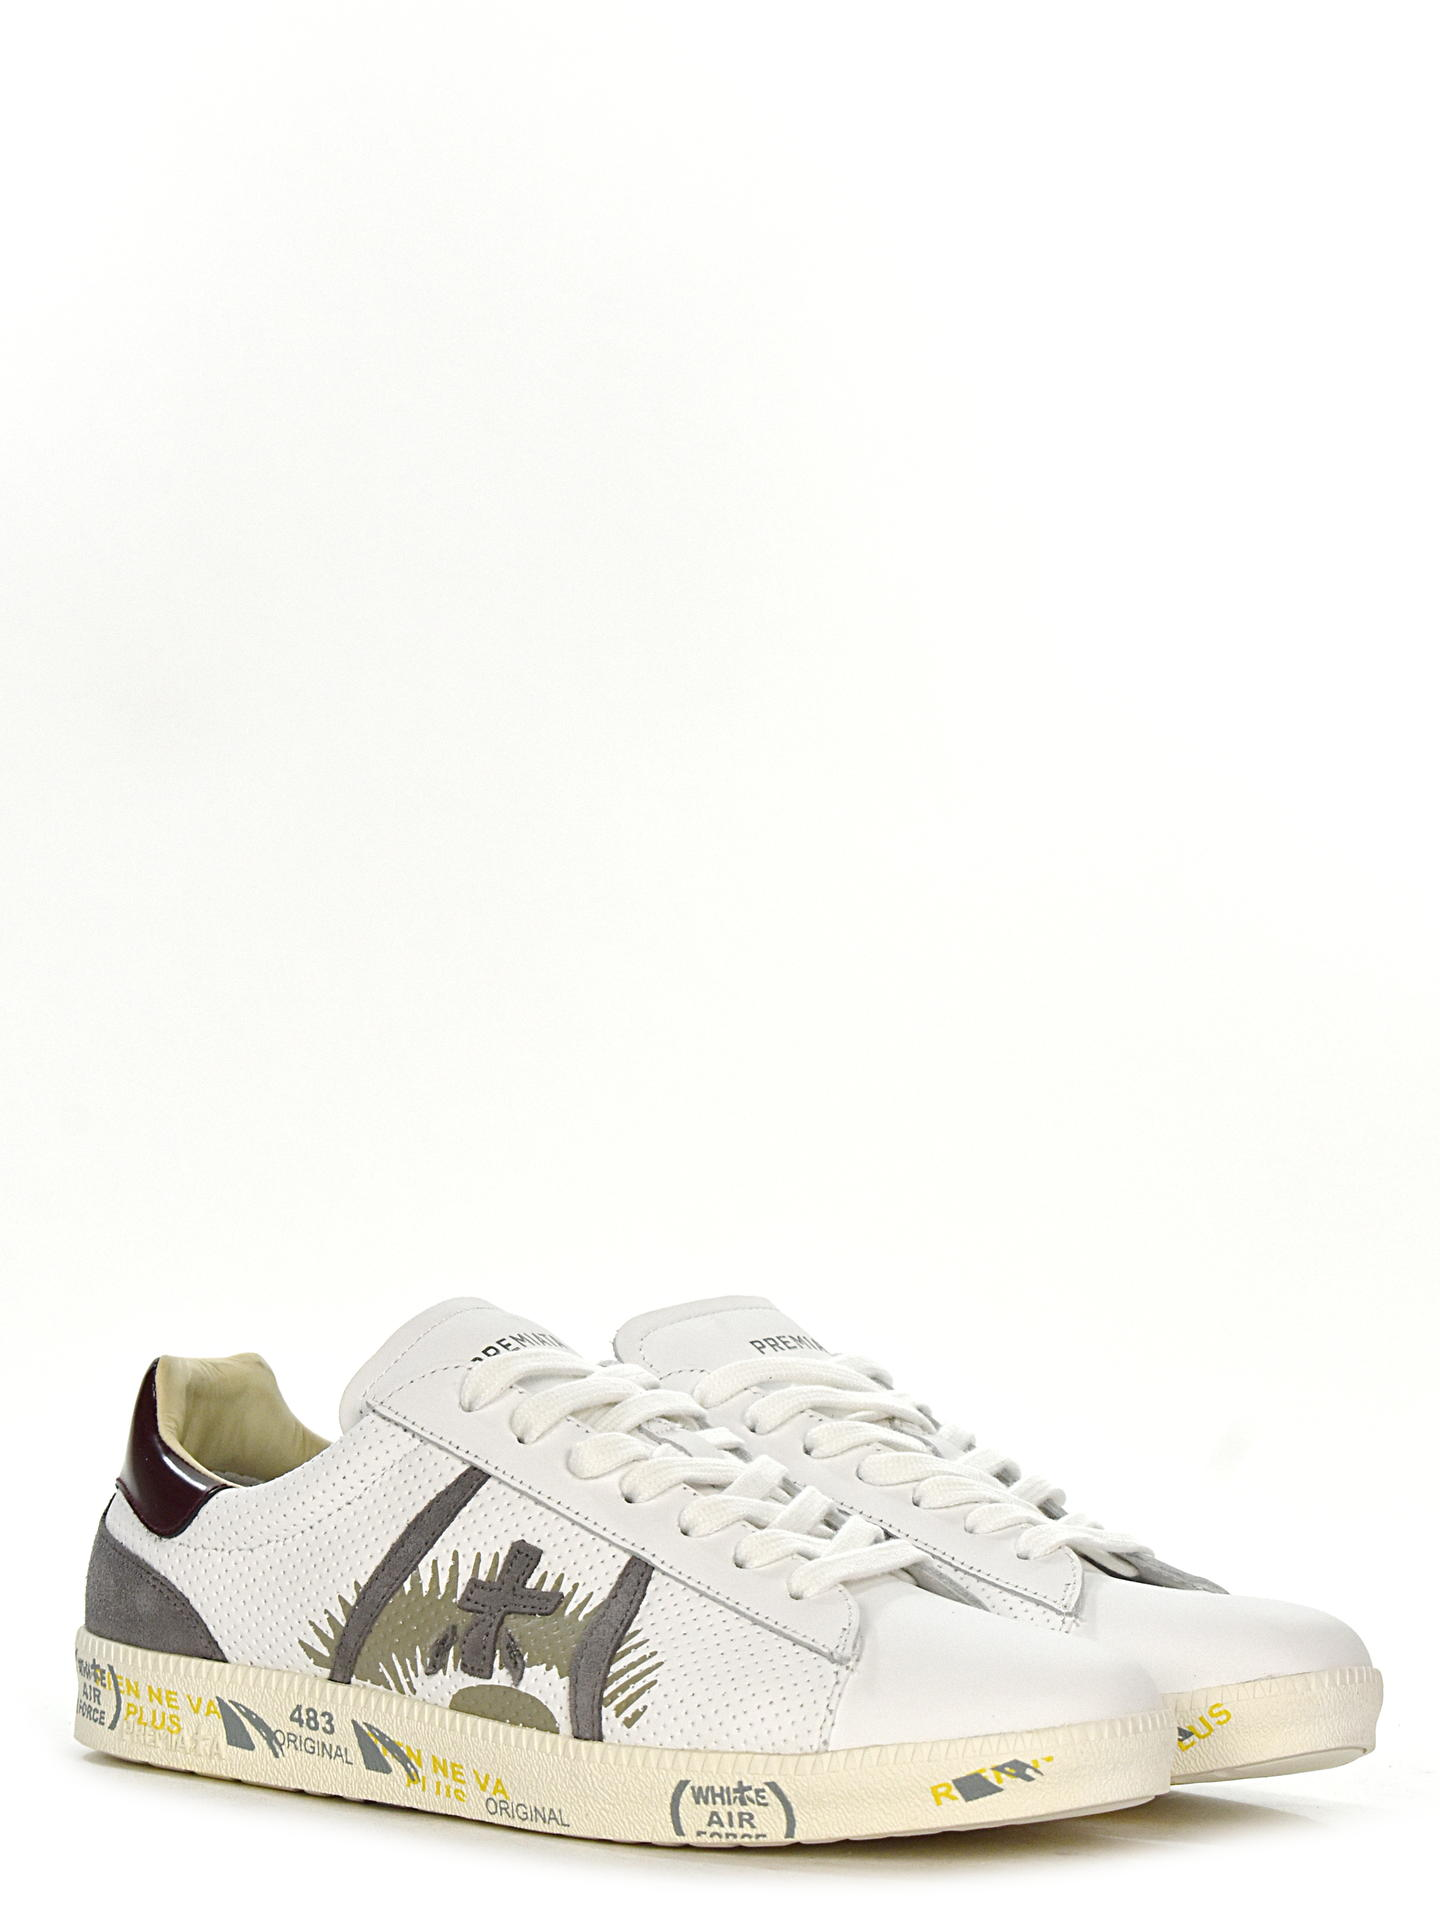 PREMIATA | DESIDERIO COLLECTION